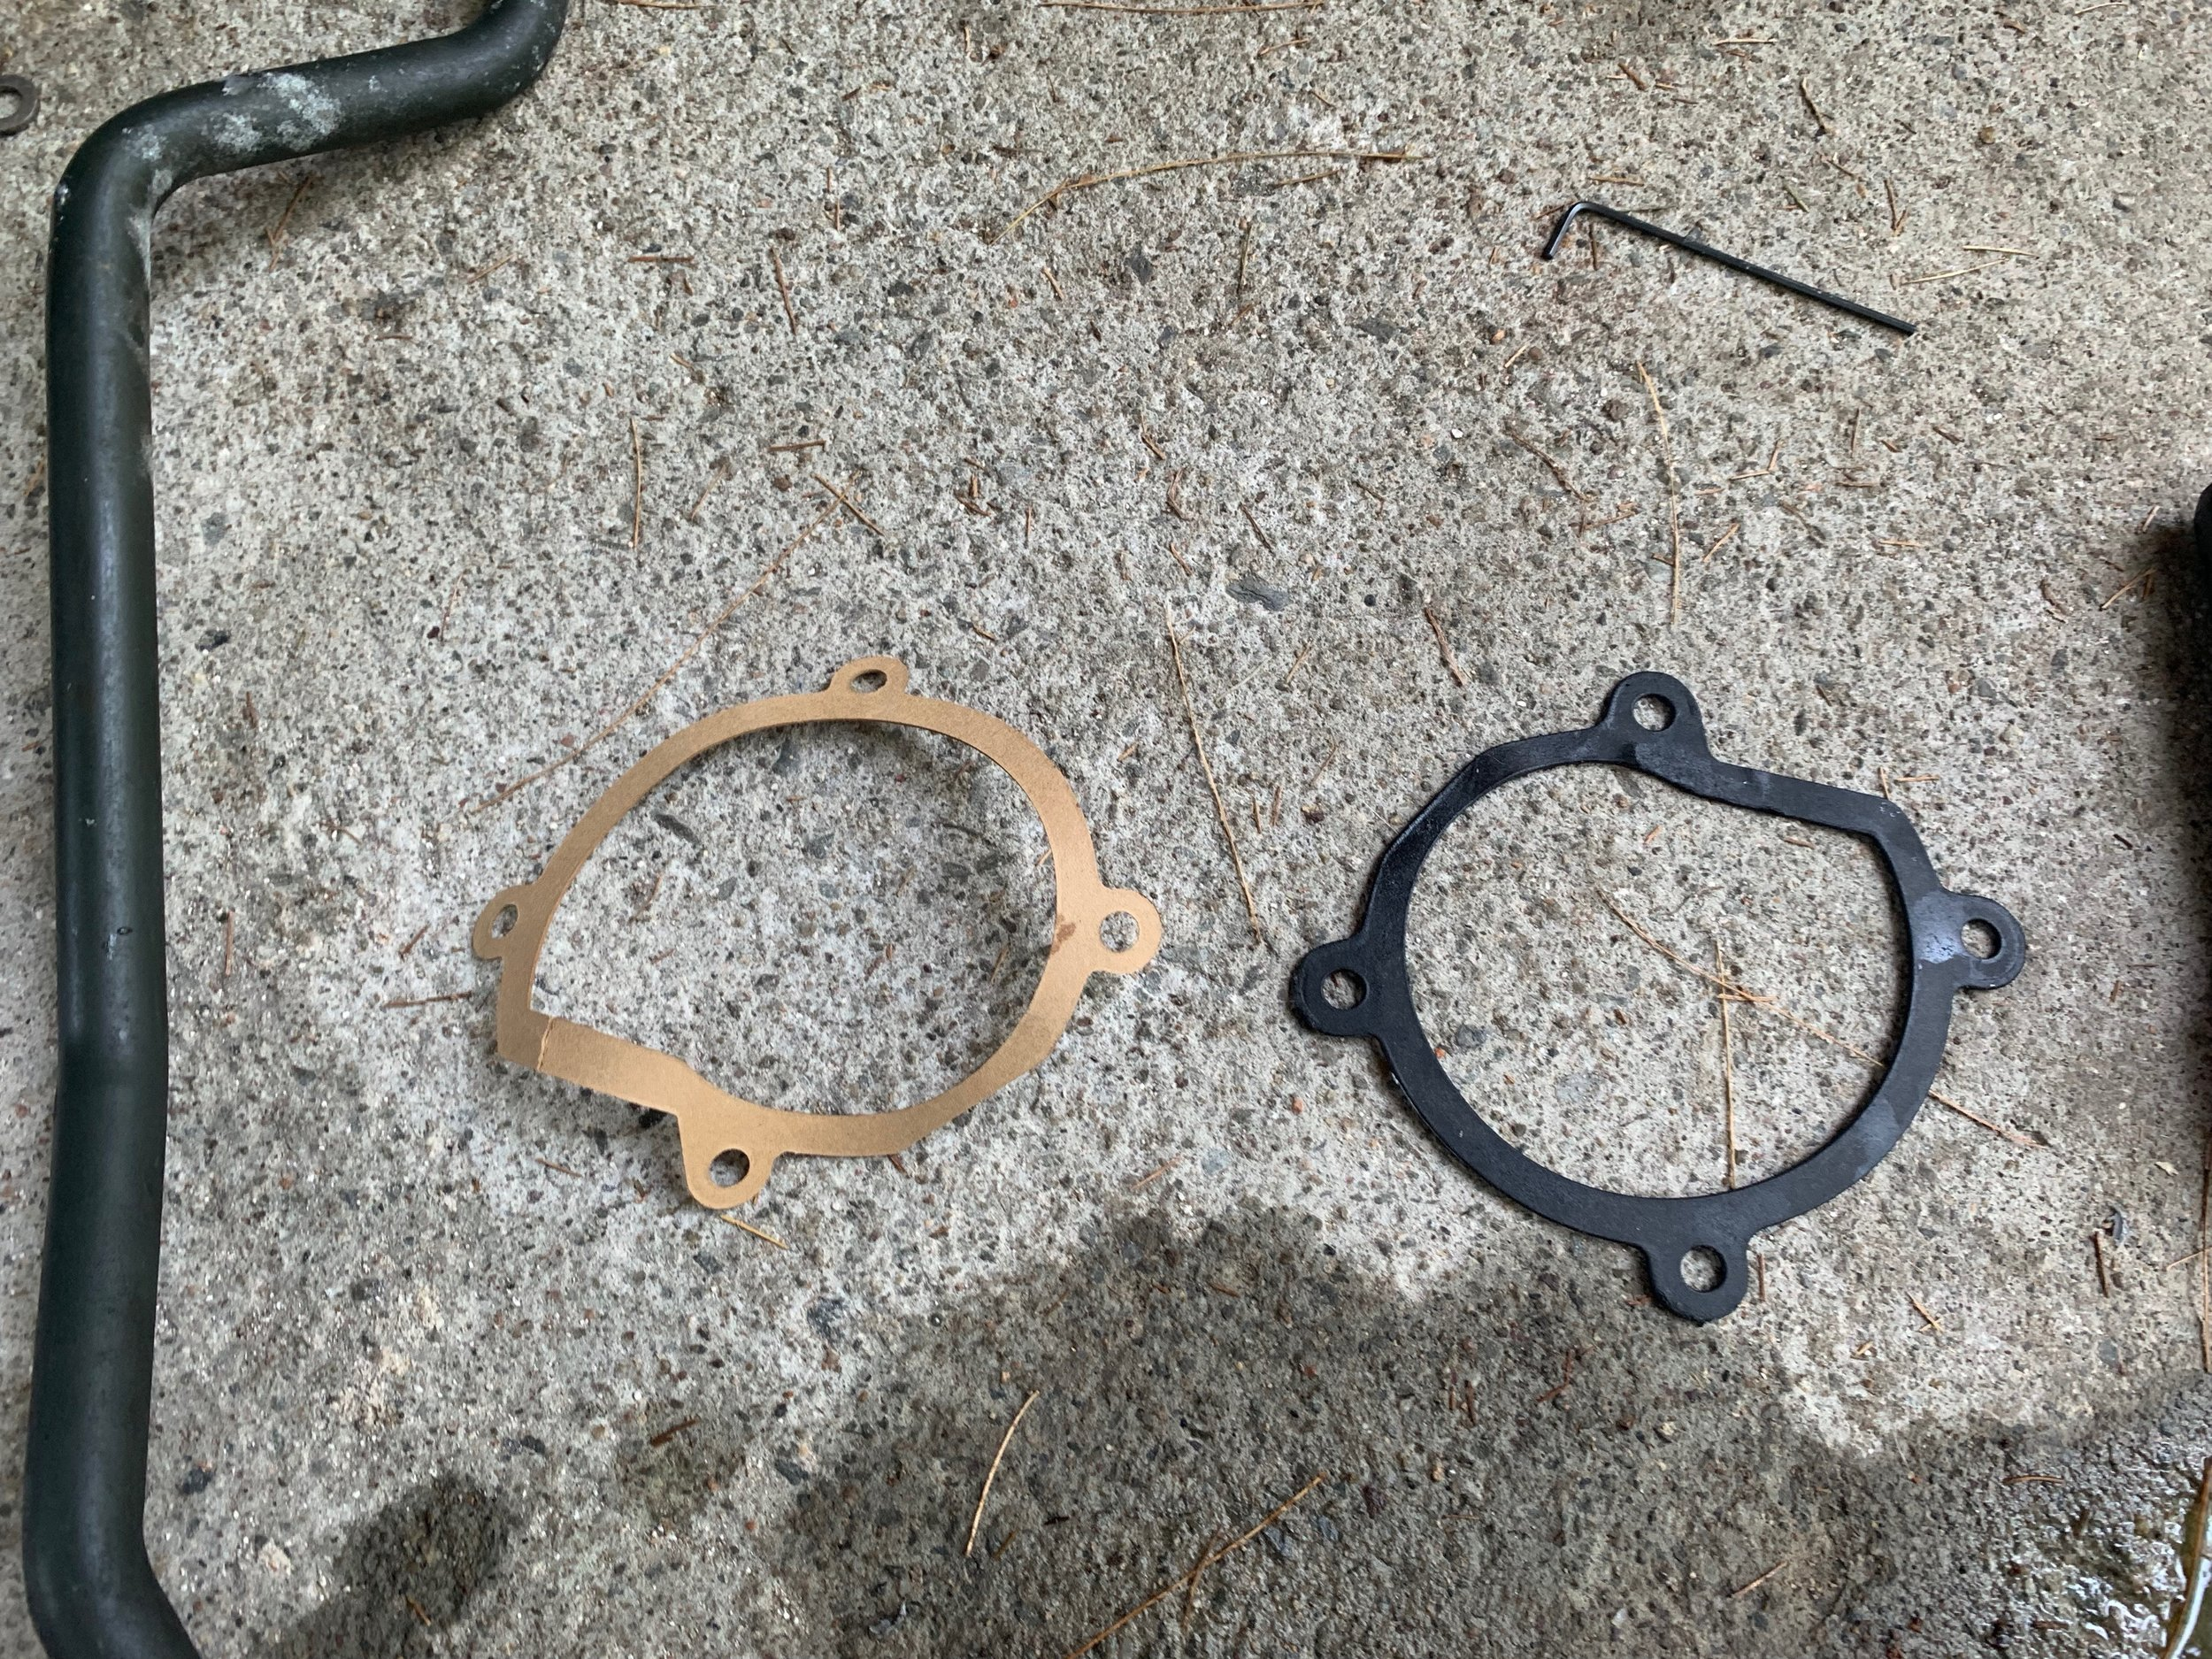 The cheap paper gasket that came with the new pump, and the nicer rubber gasket on my old pump that I reused.